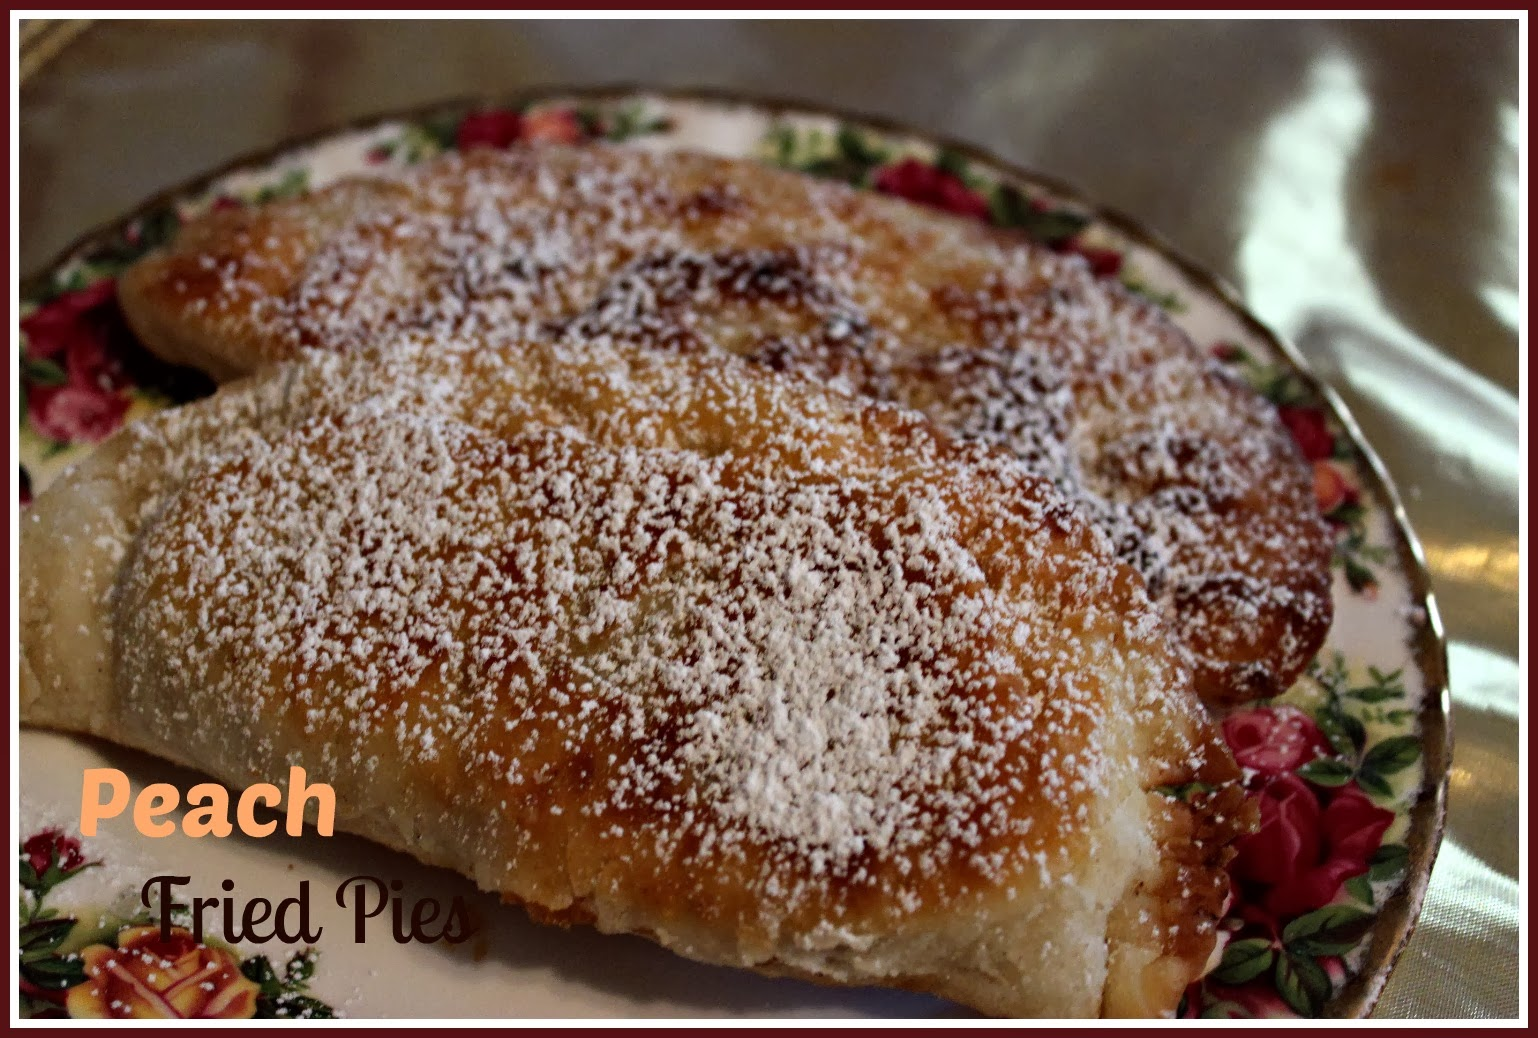 Serve plain or with a sprinkle of powdered sugar! They are yummy!